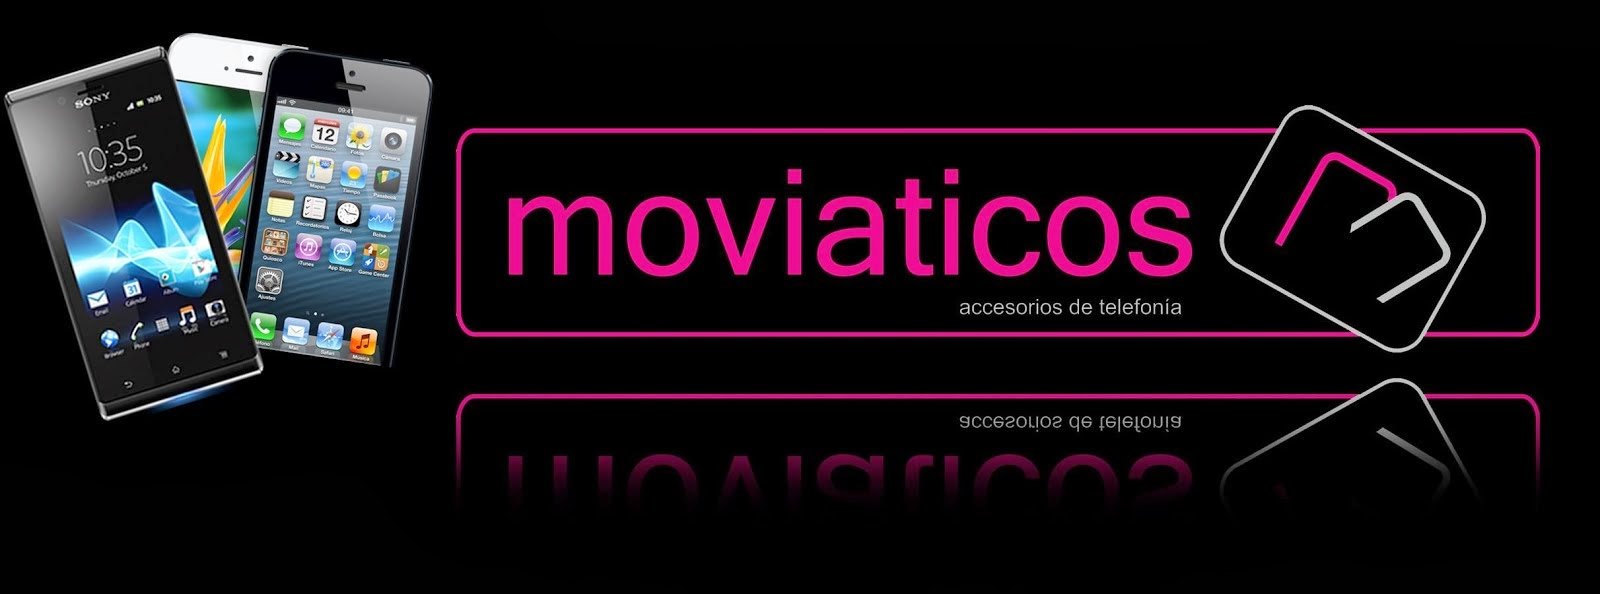 WWW.MOVIATICOS.COM